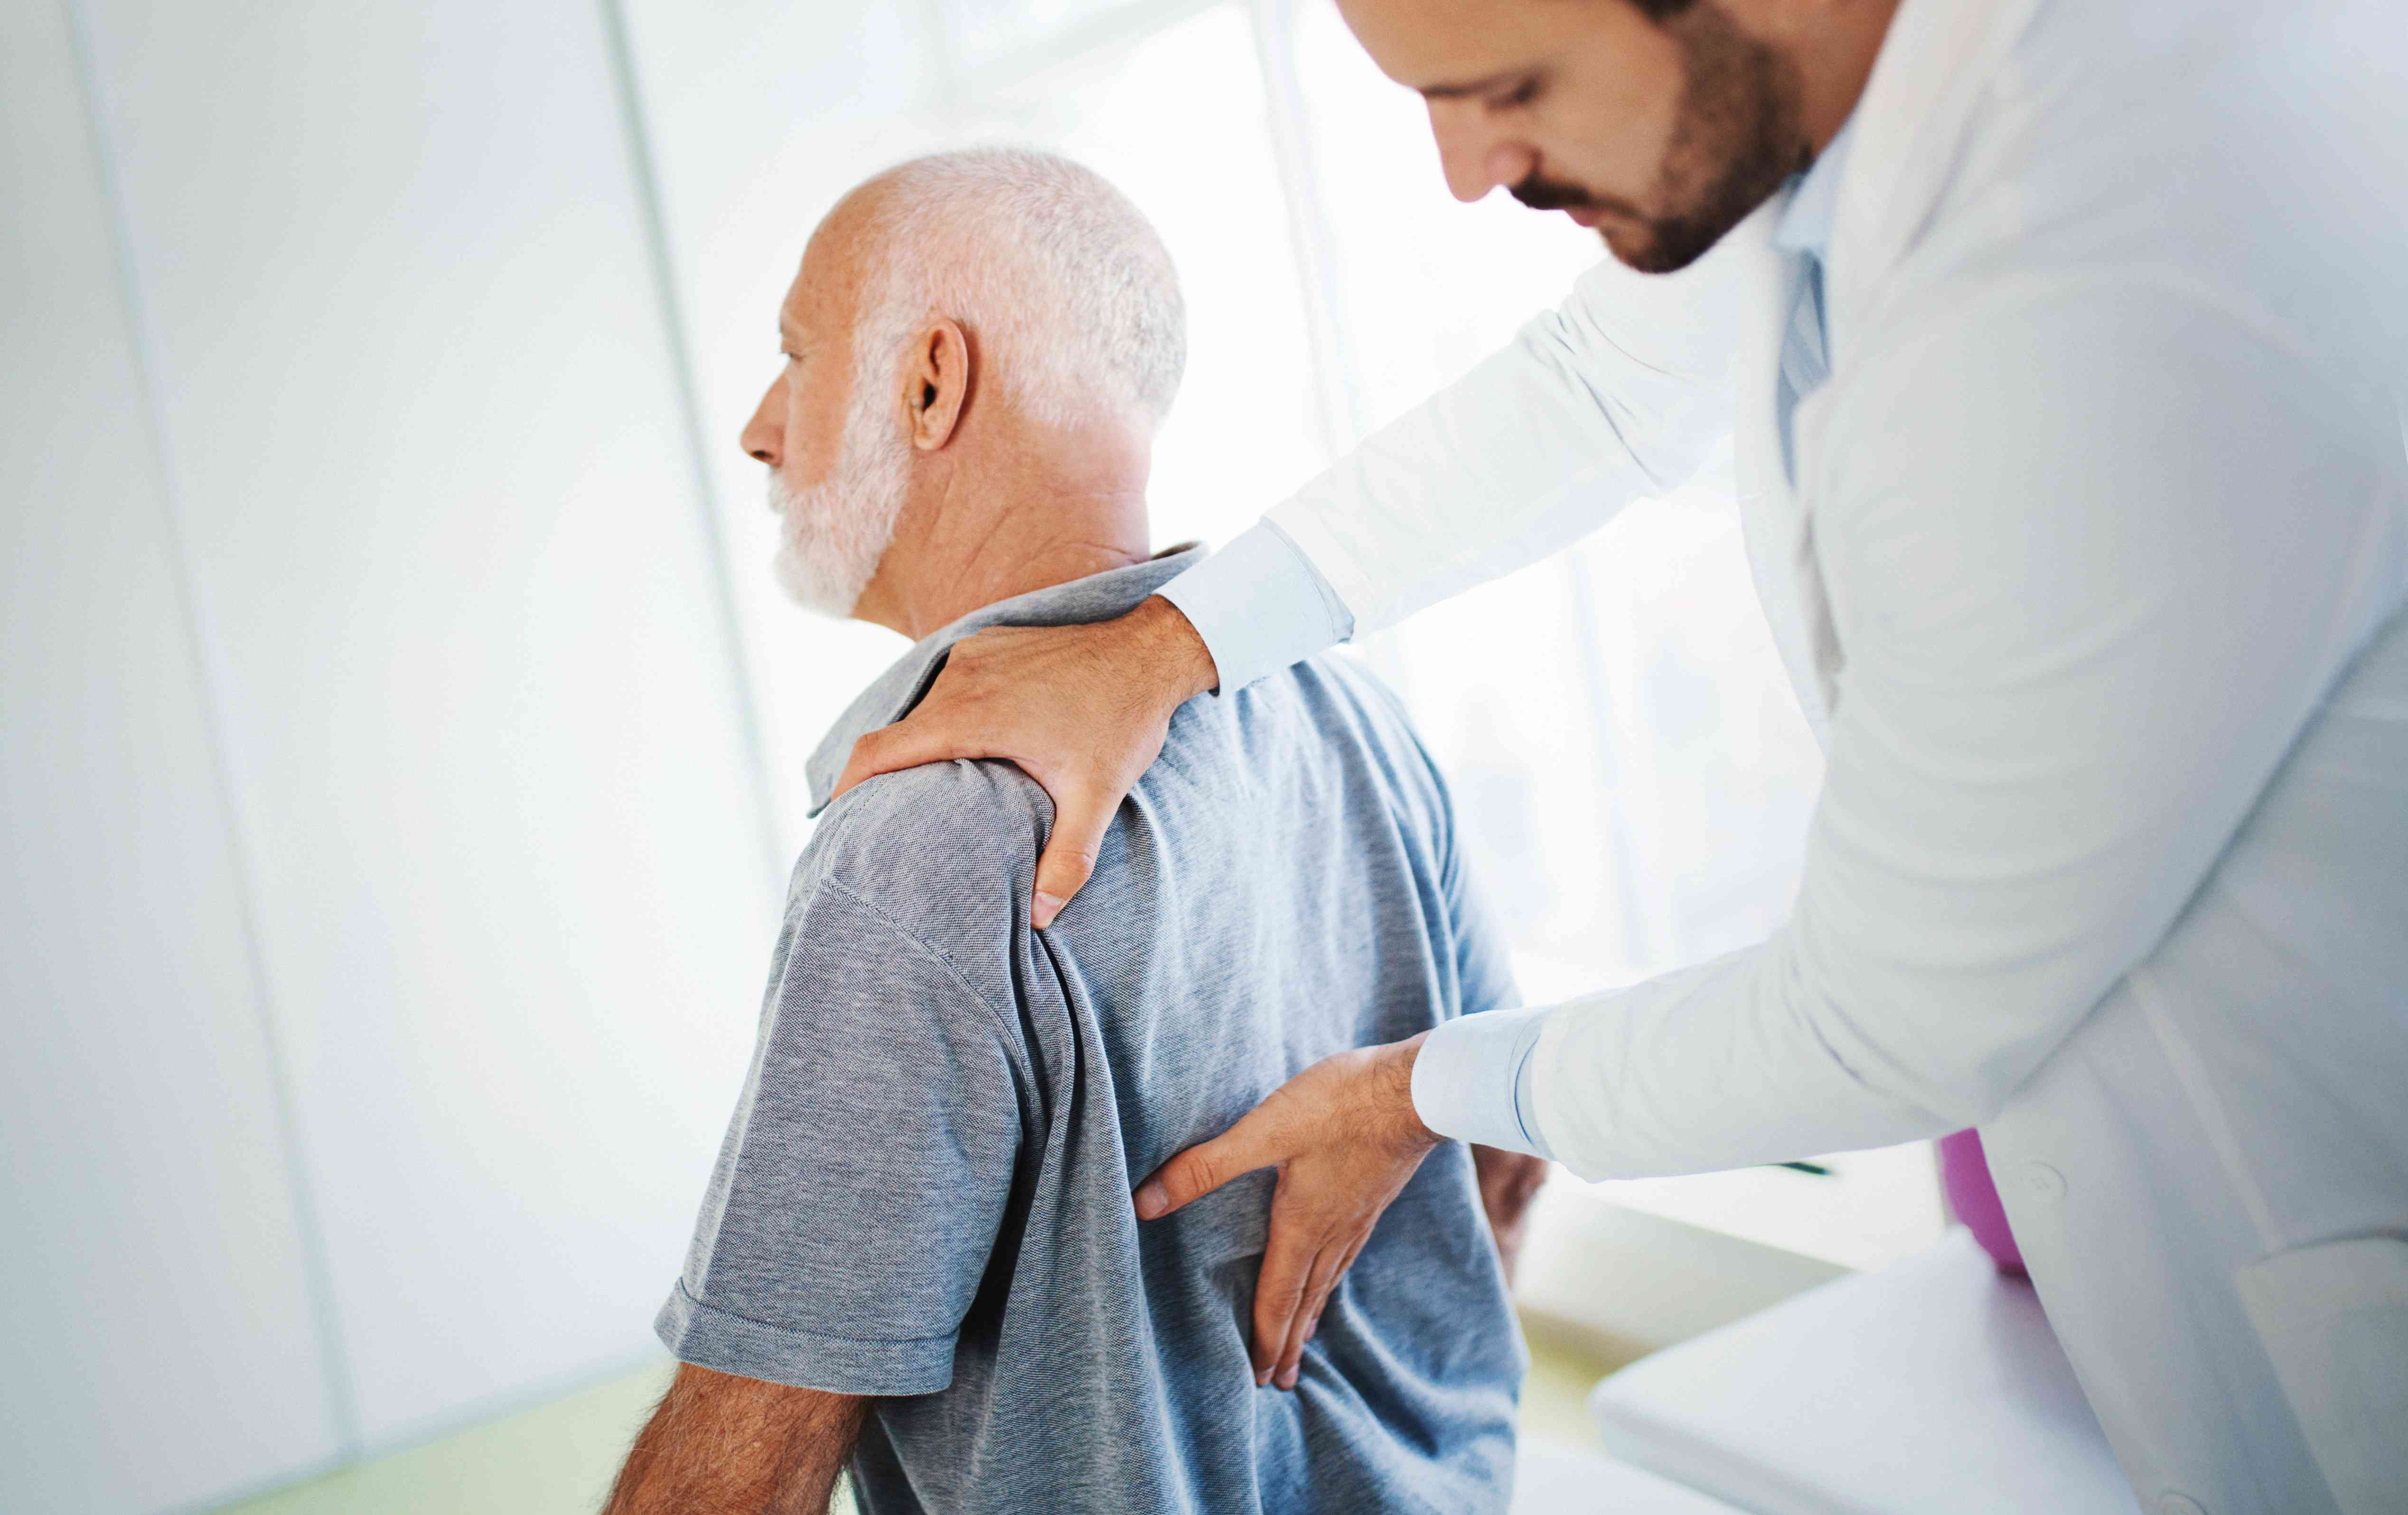 Doctor examining man with lower back pain